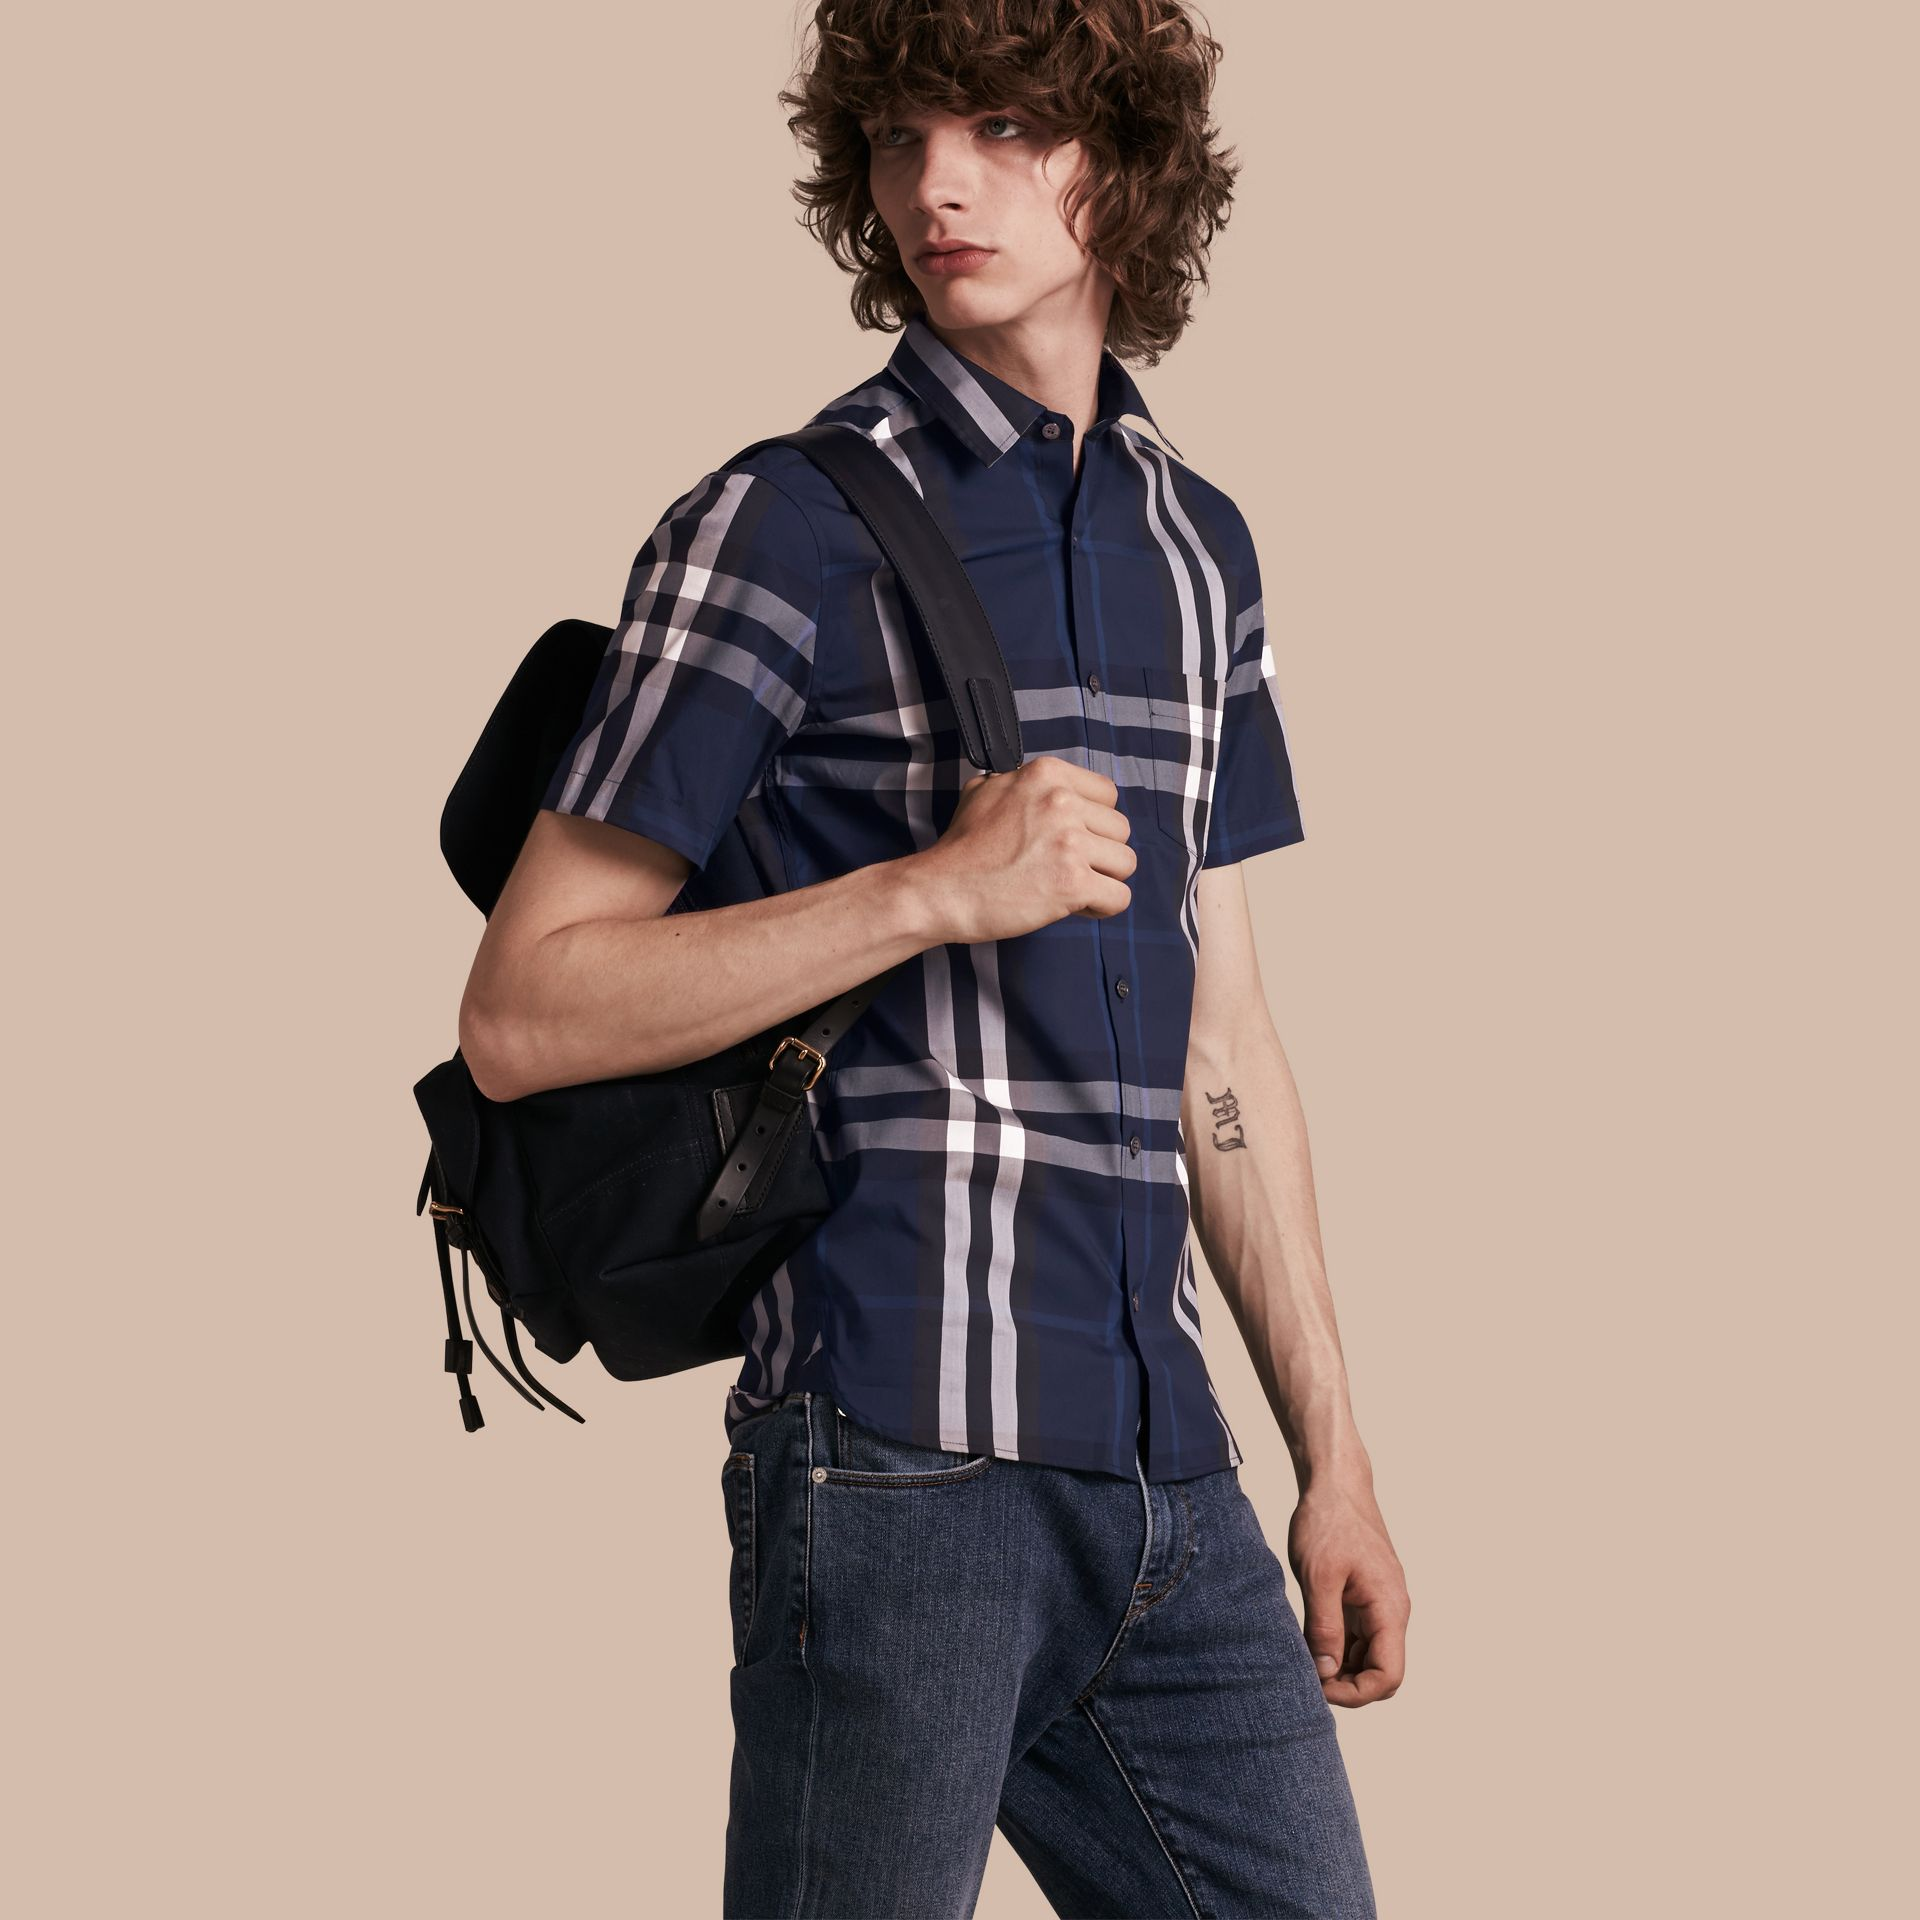 Indigo blue Short-sleeved Check Stretch Cotton Shirt Indigo Blue - gallery image 1